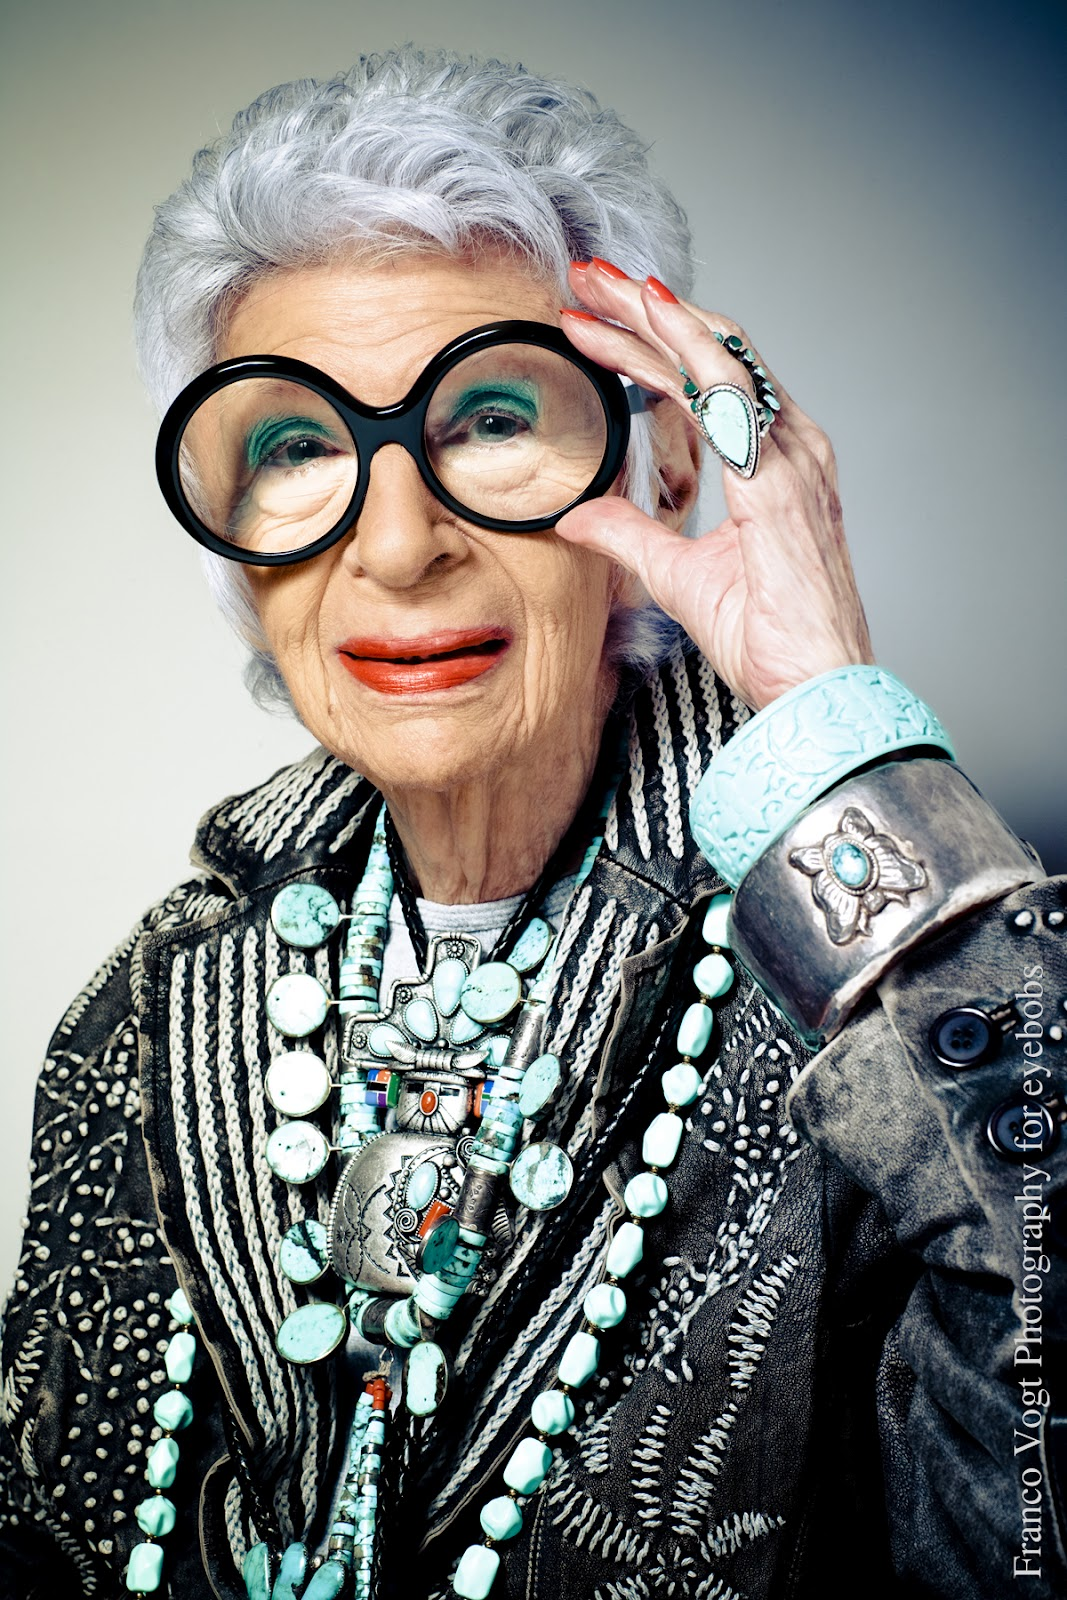 d639817d33 I just saw the Iris Apfel movie and I loved it! She is an eccentric woman  who loves fashion and has mostly become famous in her later years for her  sense of ...